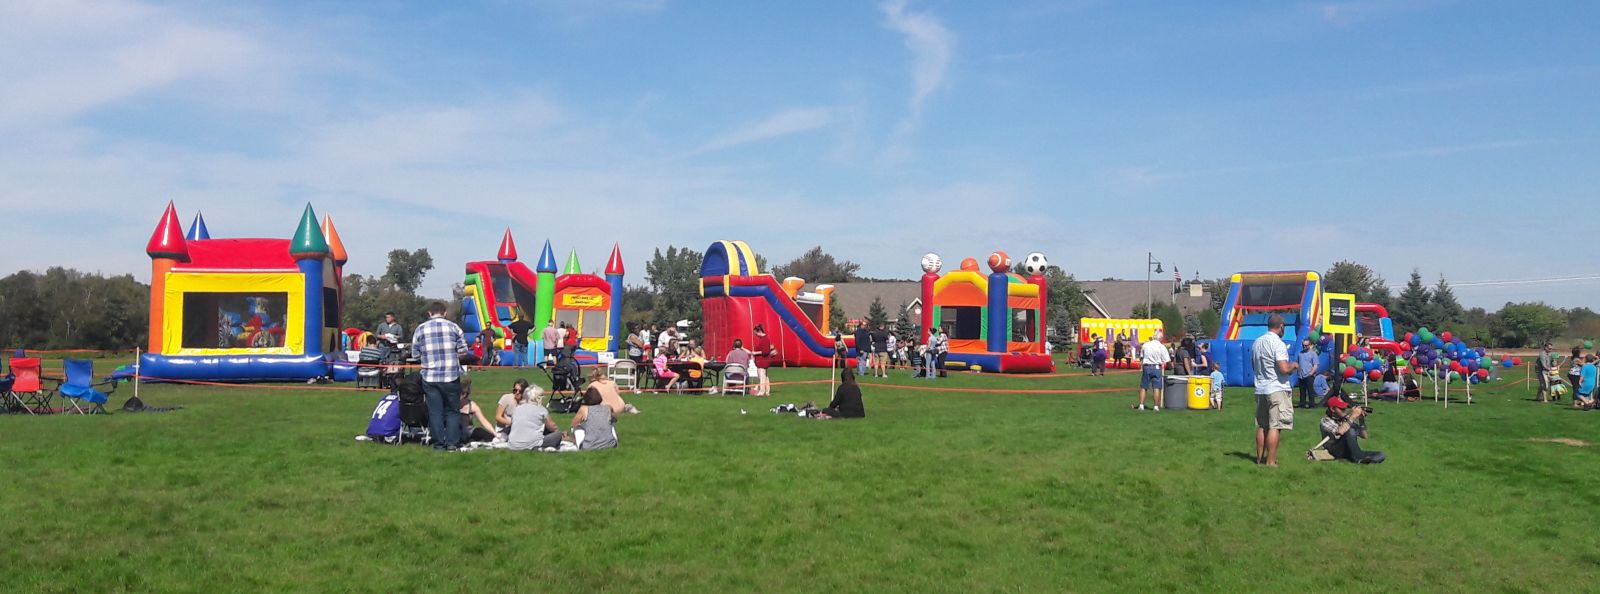 Fun Filled Castle Bounce House, GIANT Slide, and other Inflatables at church event.